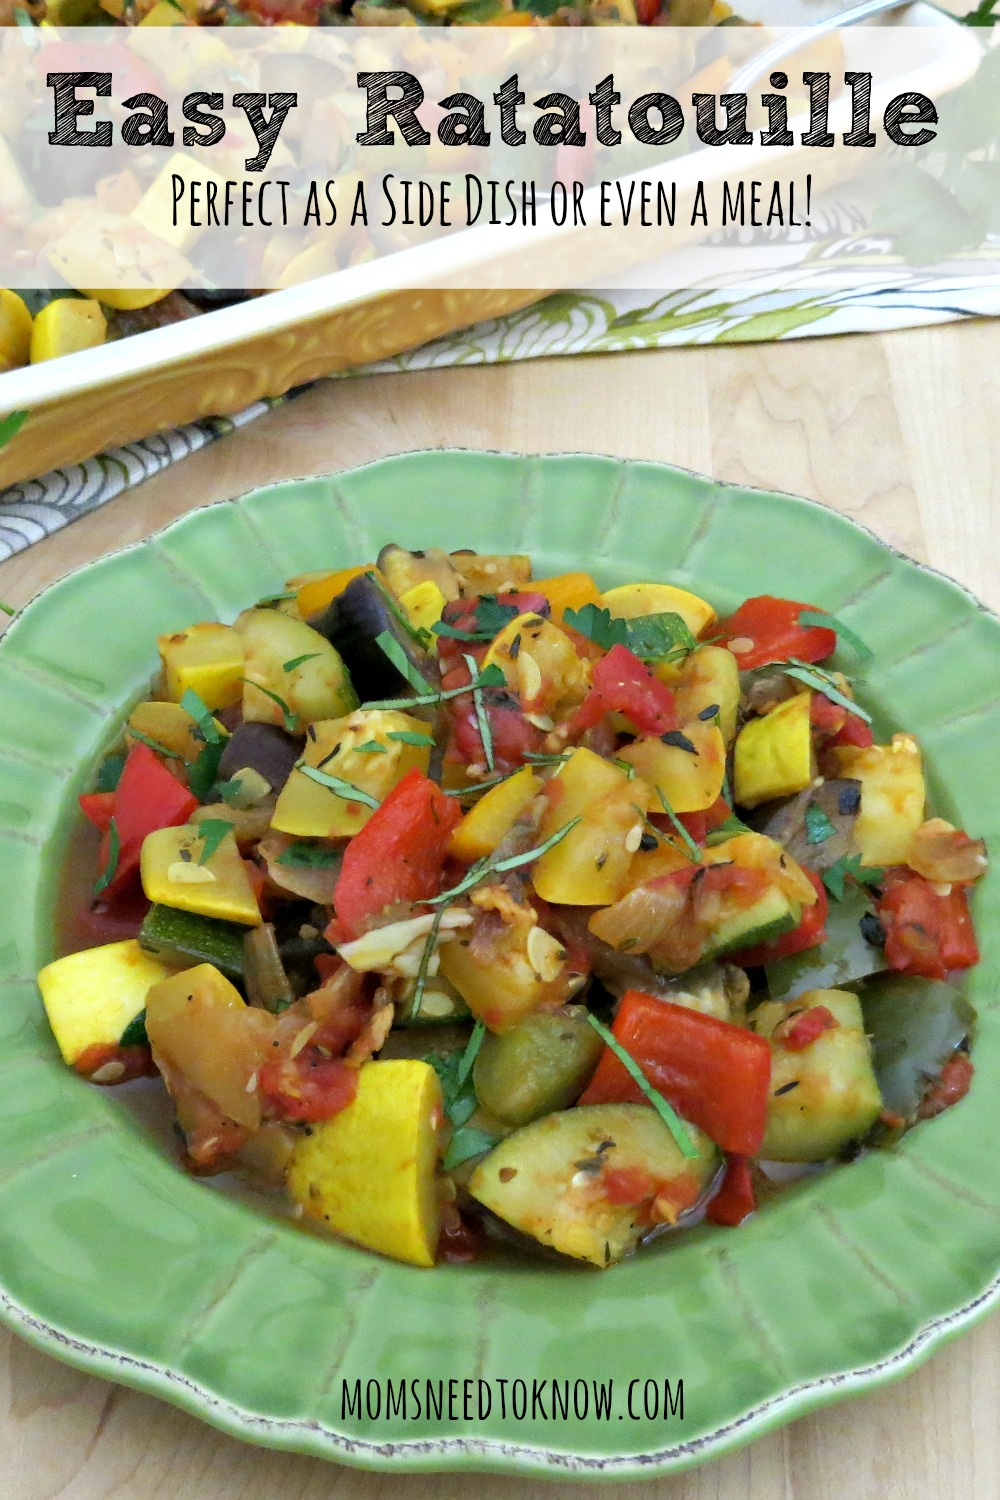 This easy ratatouille recipe is packed with flavor and makes a great side dish...or sprinkle some Parmesan cheese on it and it can be a dinner by itself!